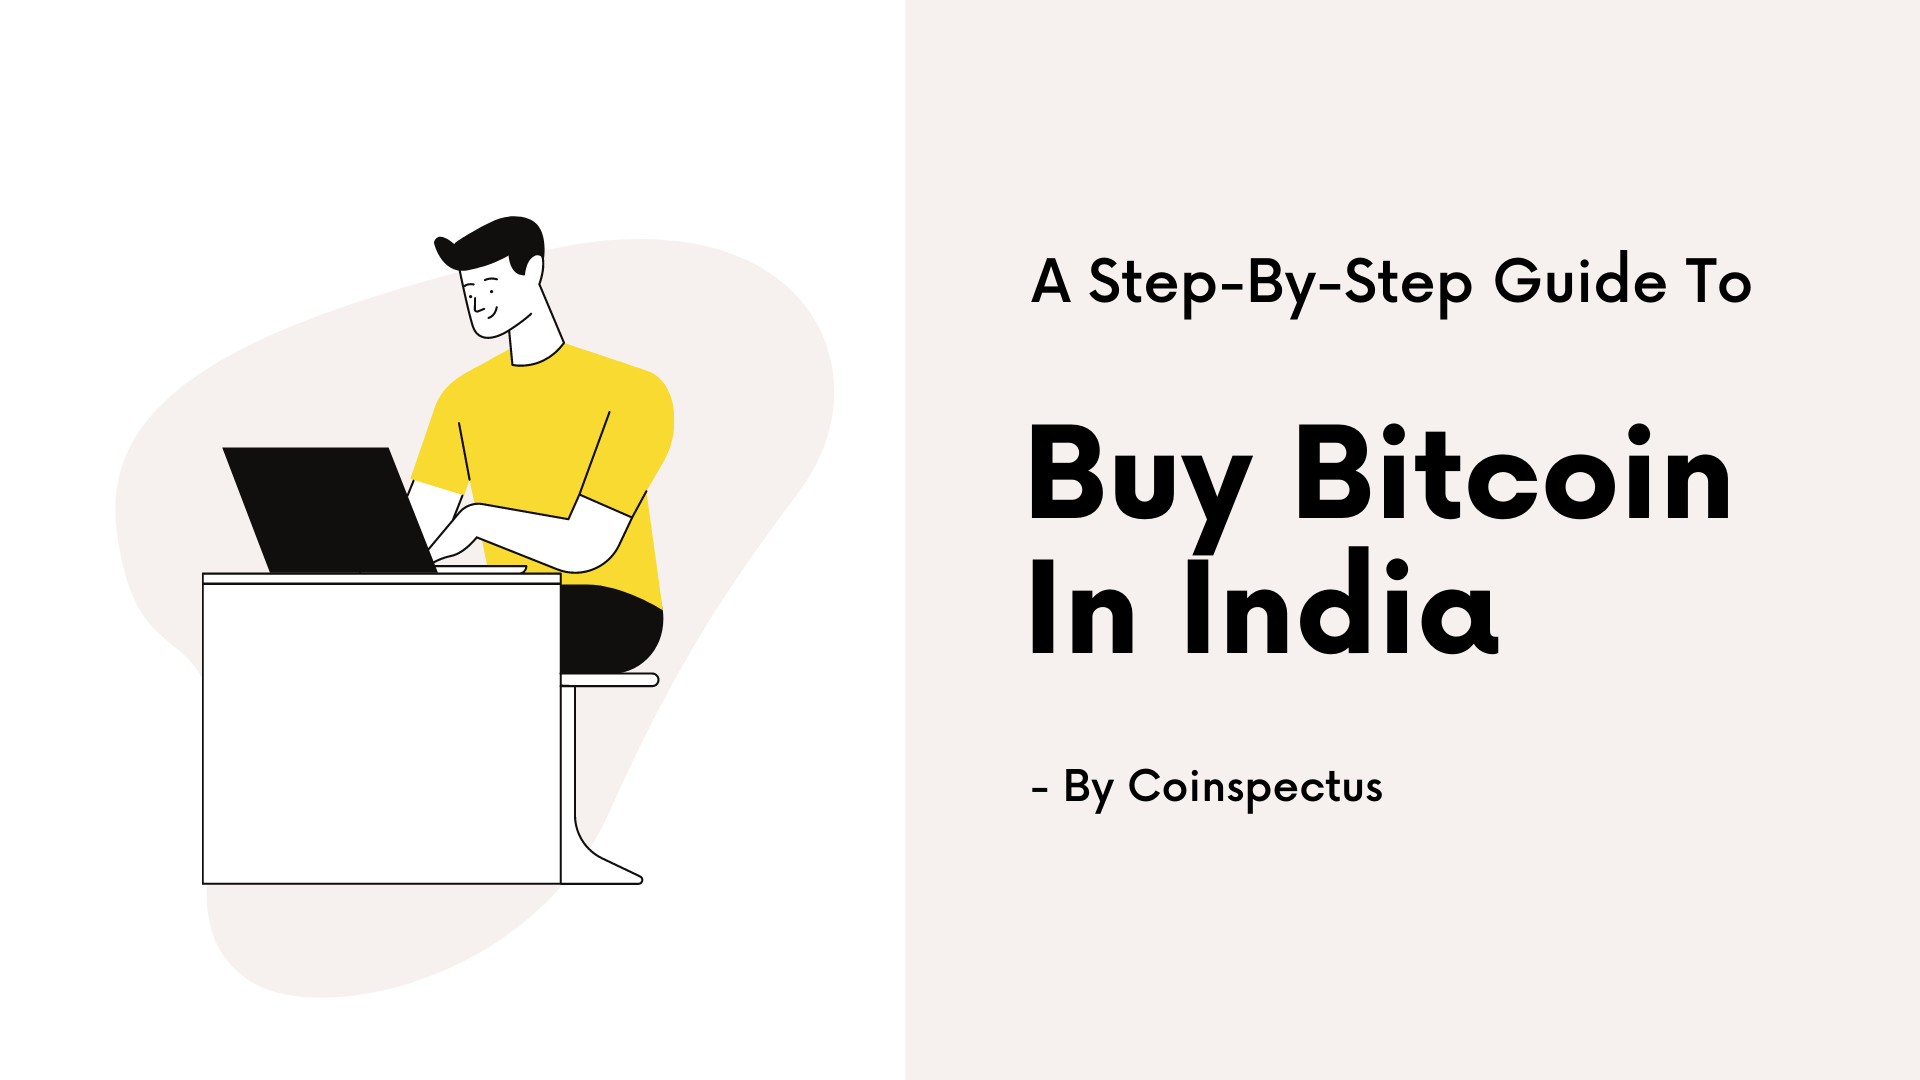 Step By Step Guide To Buy Bitcoin In India.